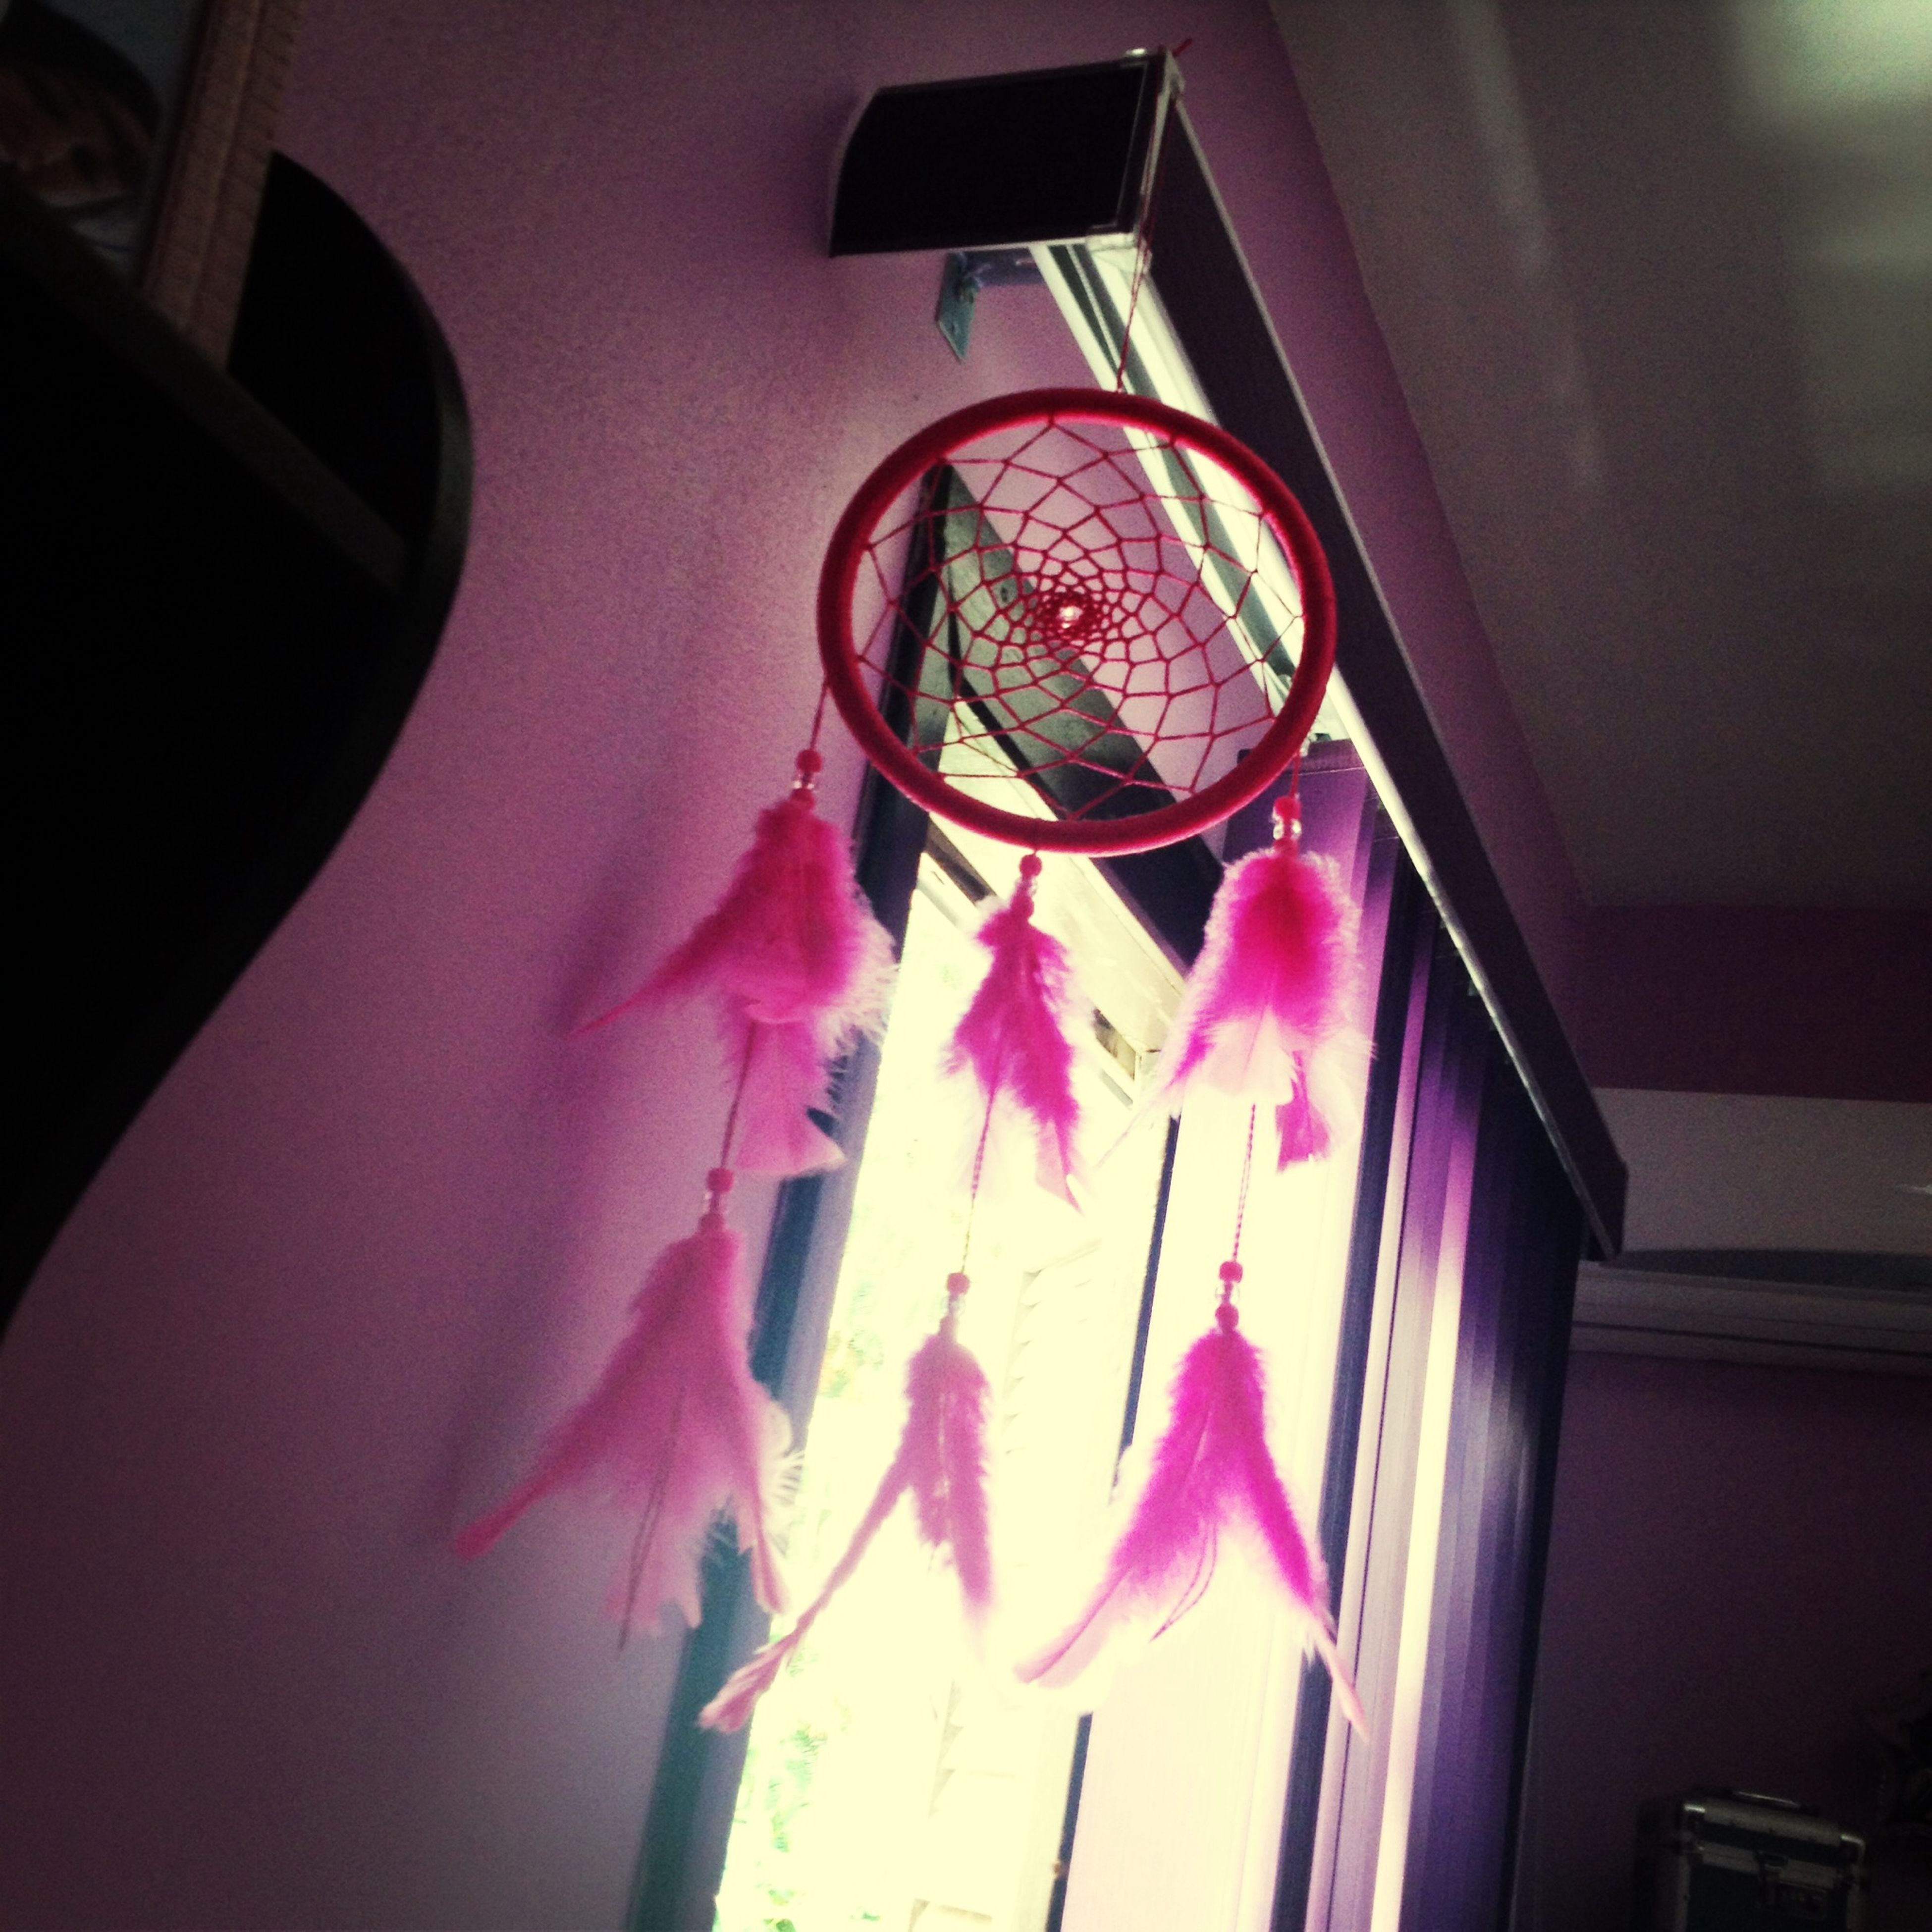 indoors, glass - material, close-up, window, flower, transparent, reflection, hanging, pink color, home interior, decoration, still life, no people, table, focus on foreground, day, low angle view, freshness, glass, fragility